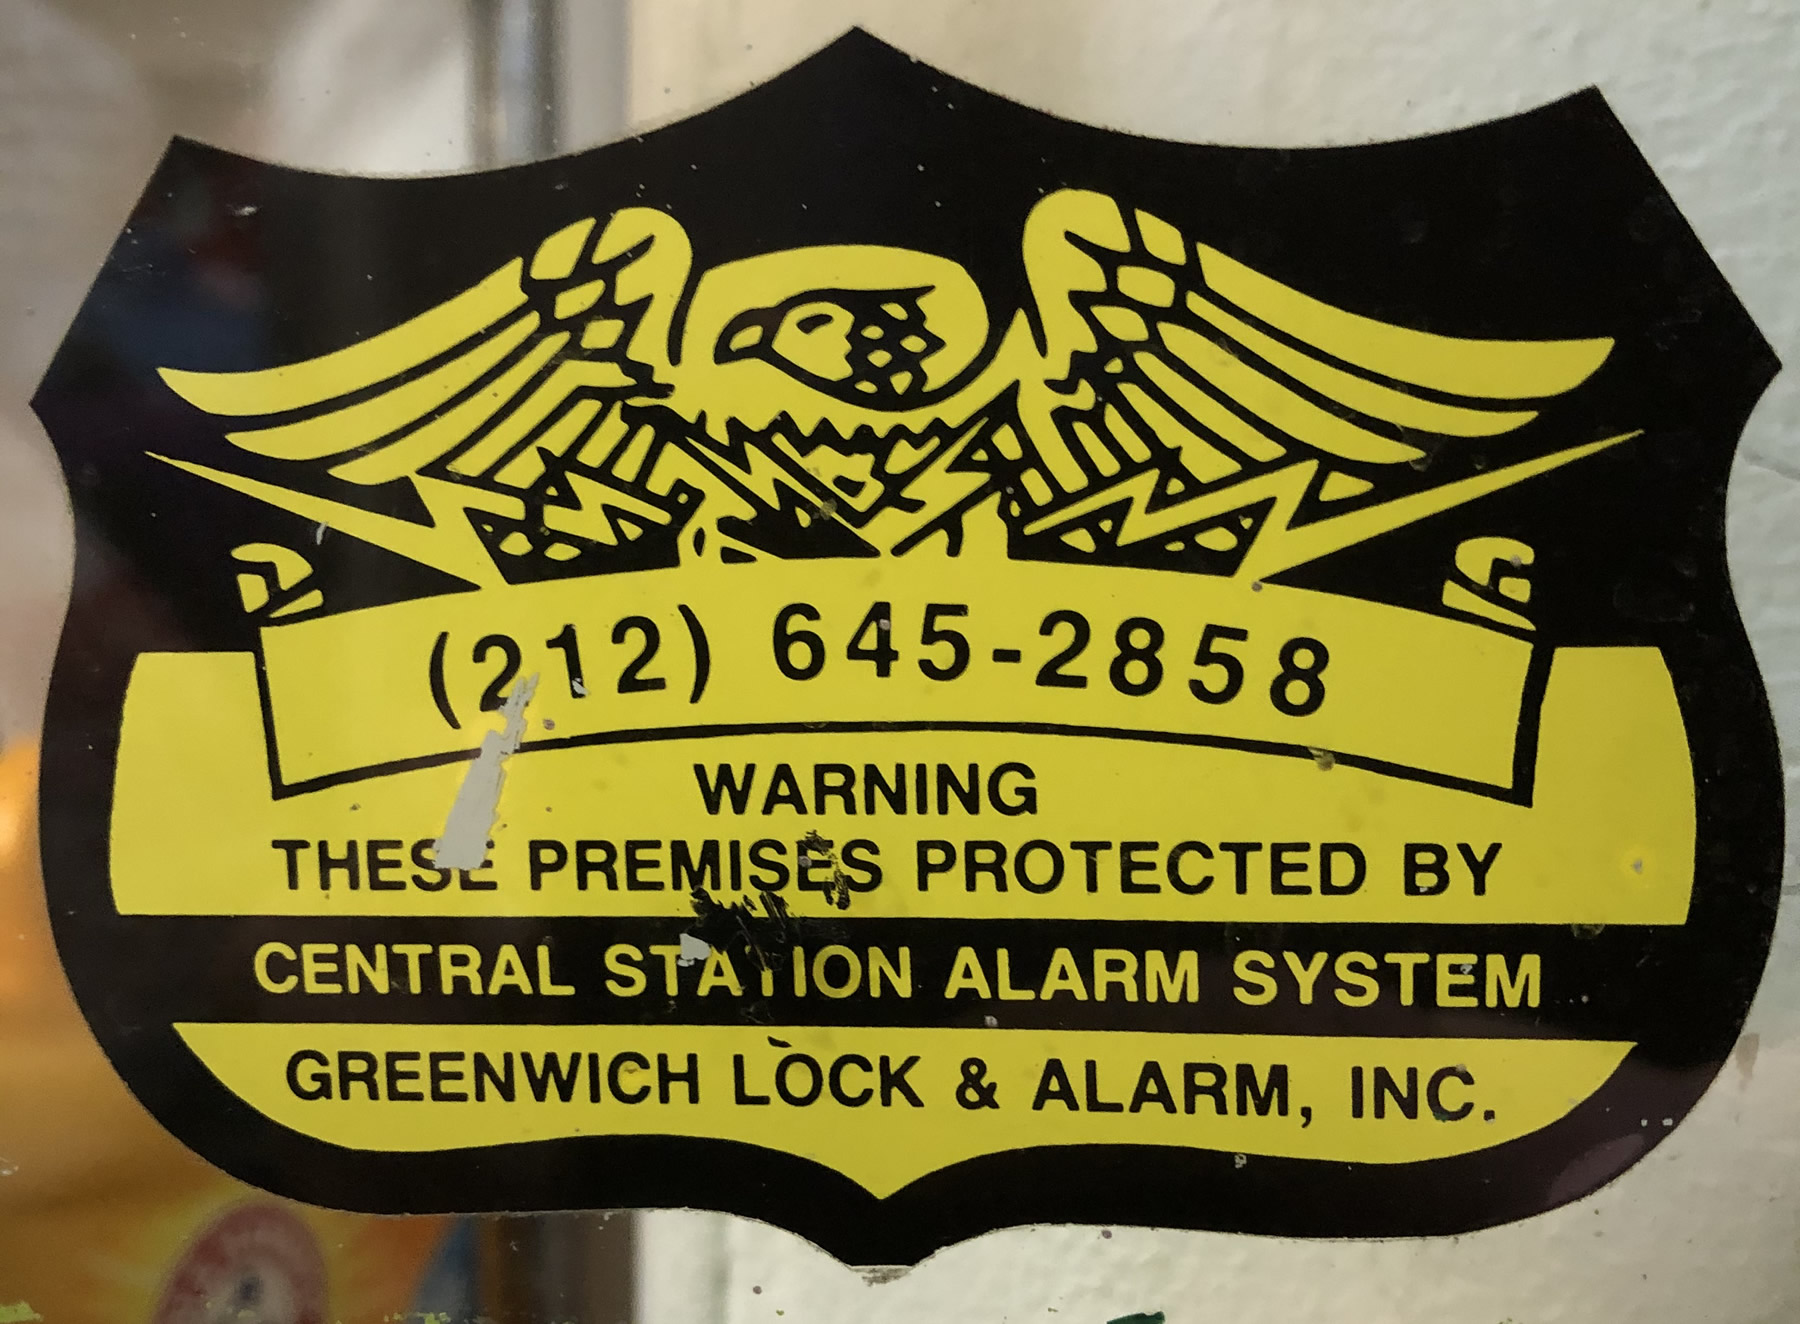 Greenwich Locksmiths has been installing burglar alarms, access control systems, and intercoms for over 40 years